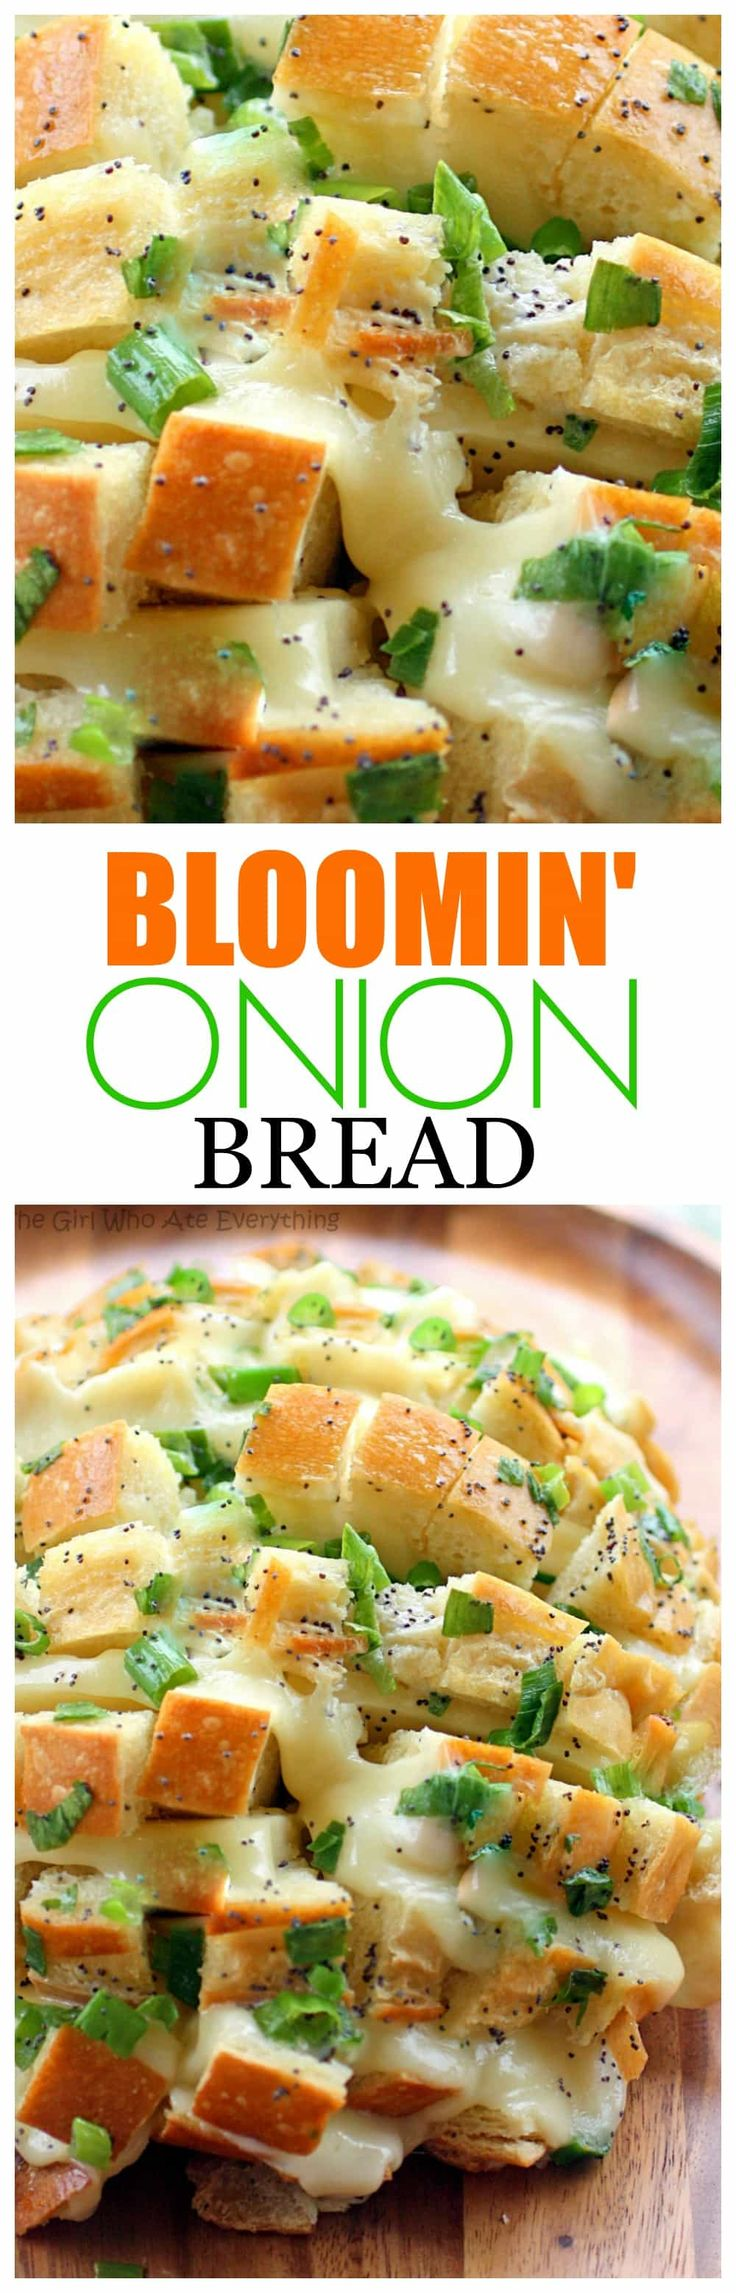 Bloomin' Onion Bread - one of my favorite party appetizers. the-girl-who-ate-everything.com